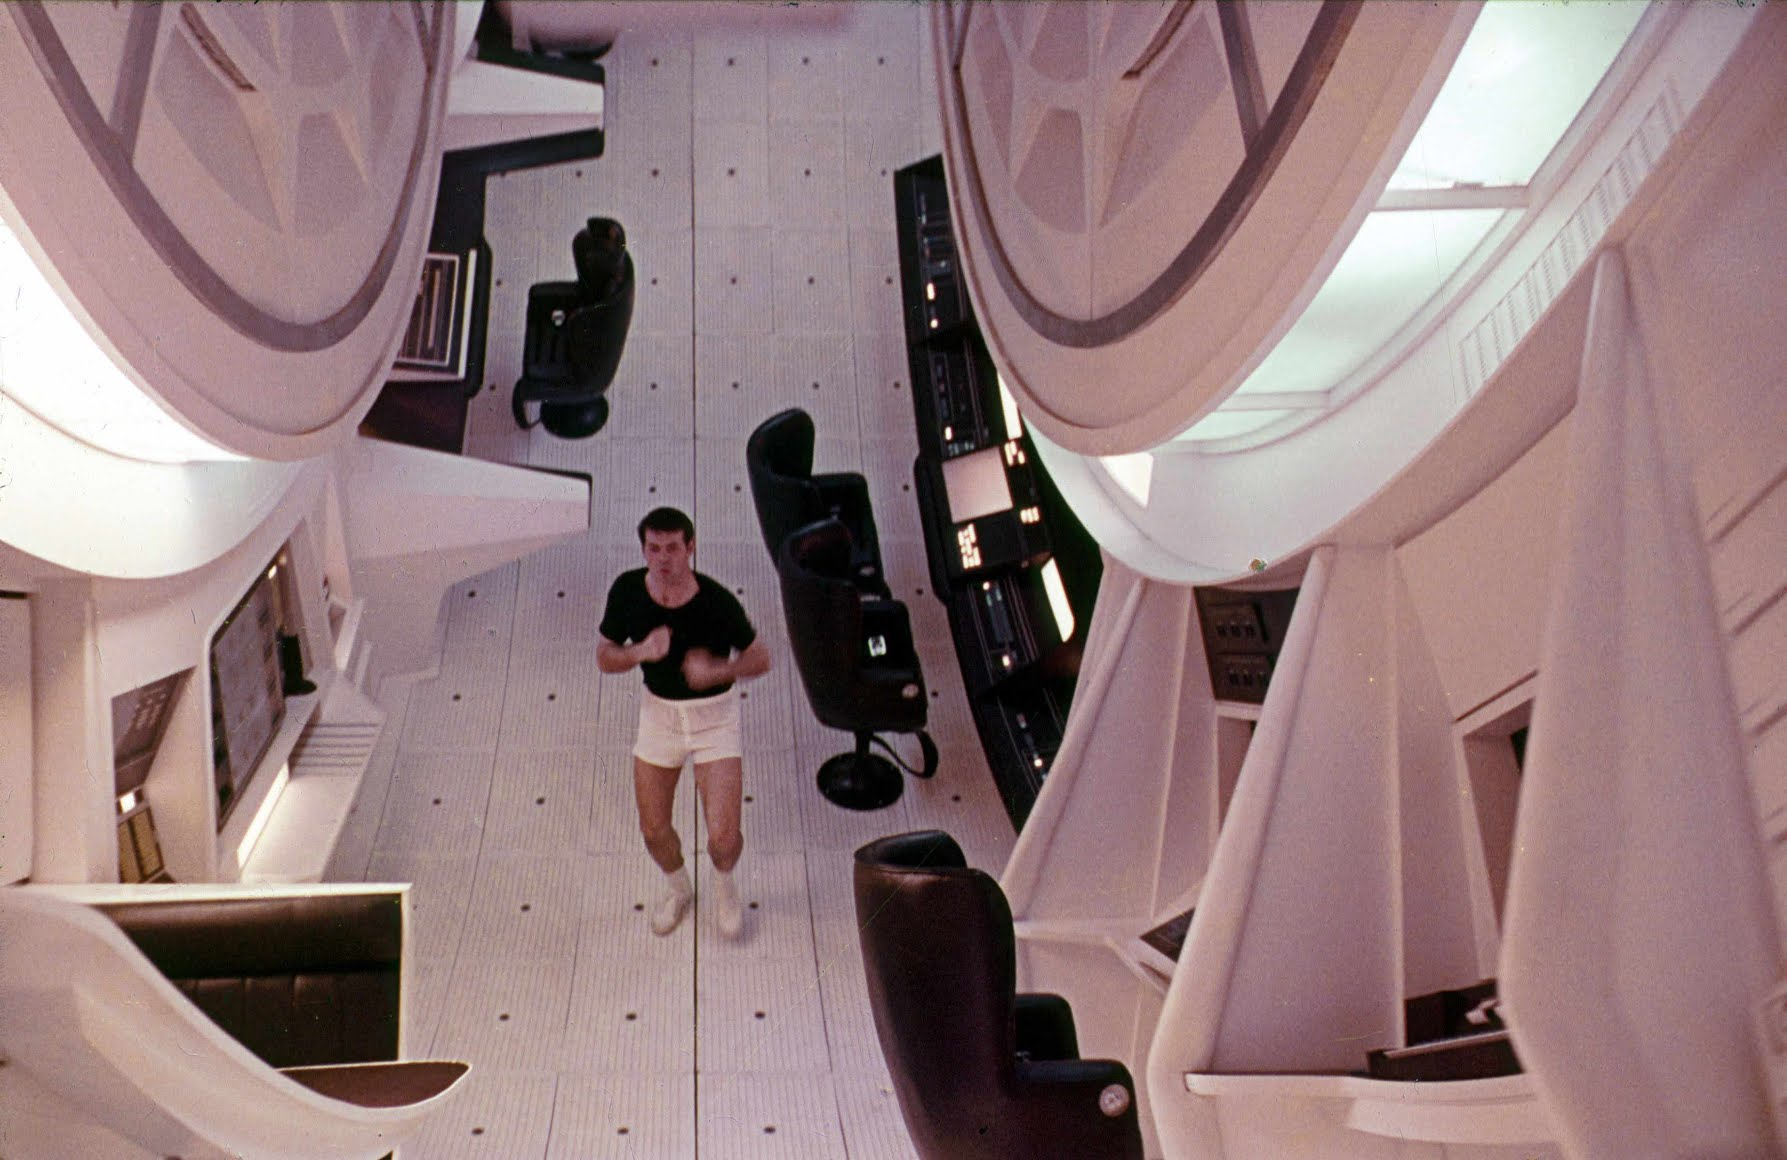 Stanley Kubrick's 2001: A Space Odyssey famously depicted a rotating space station © Alarmy